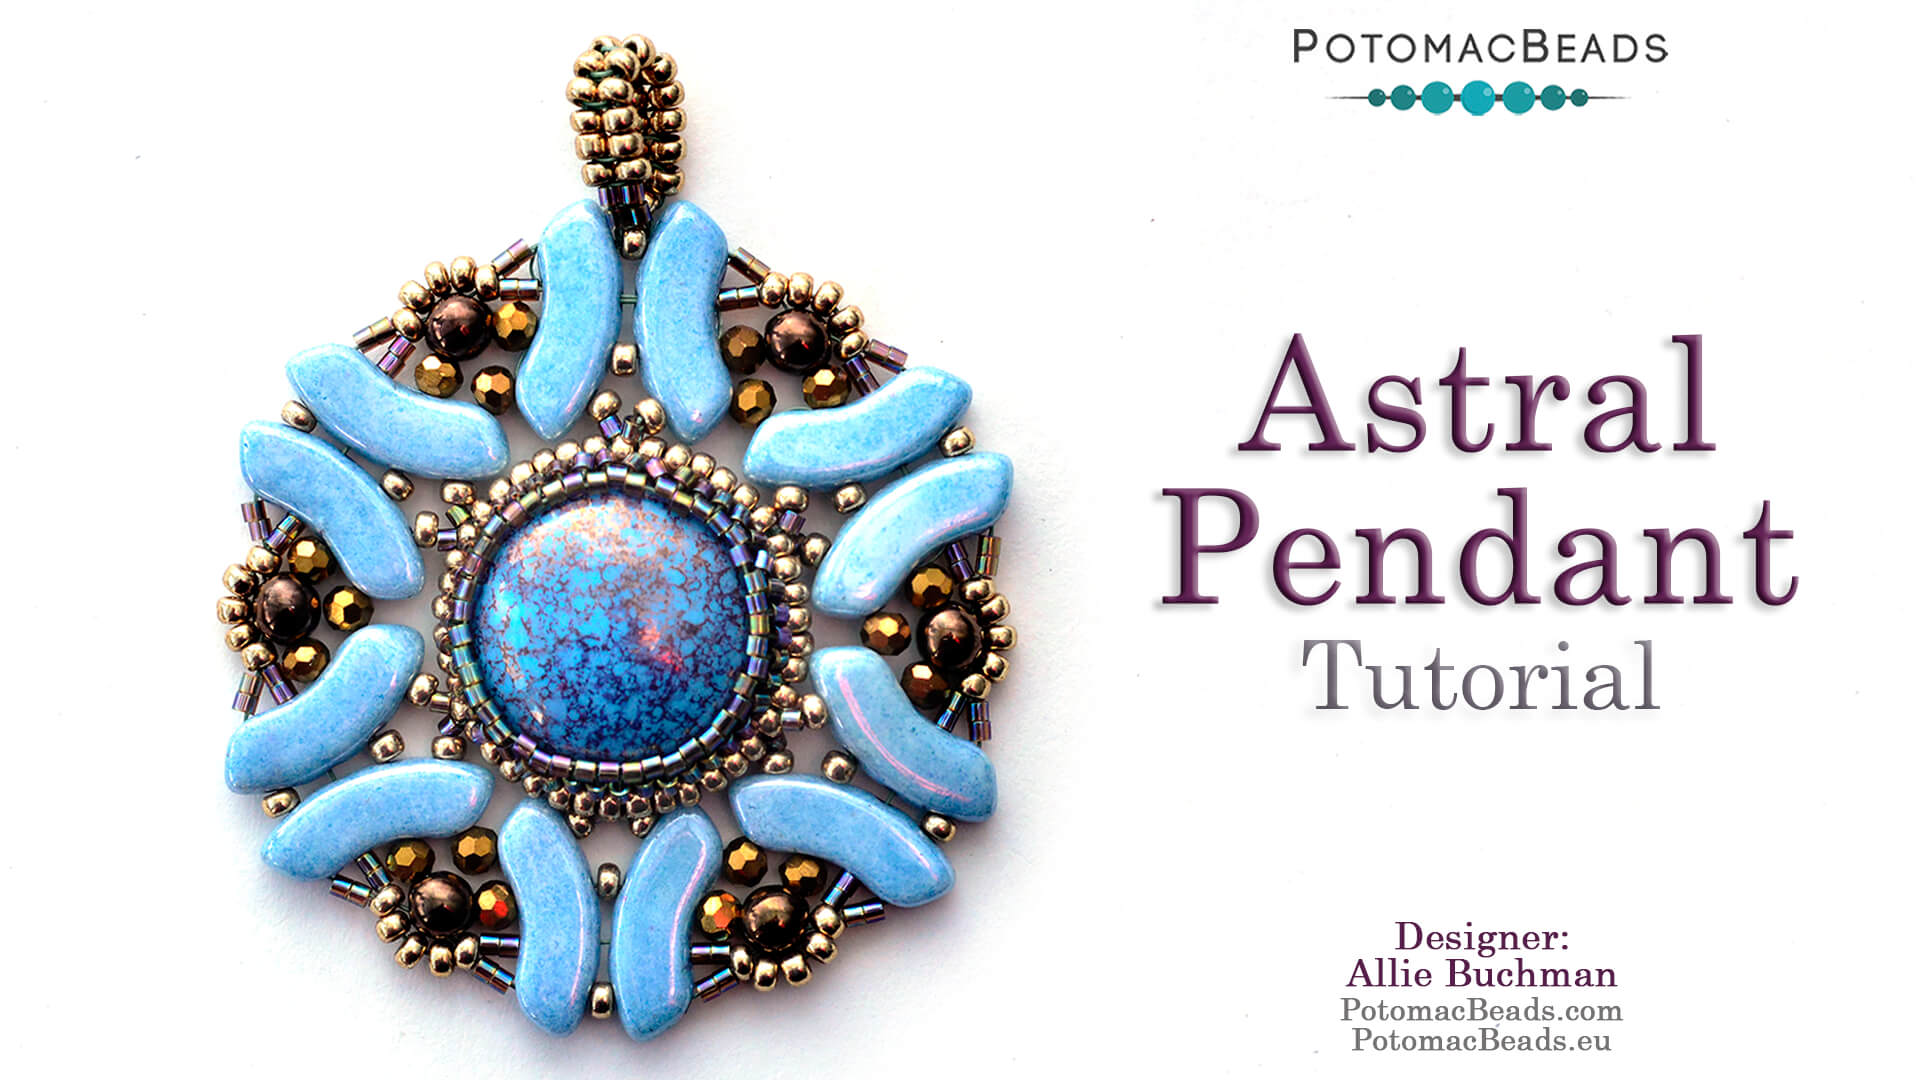 How to Bead / Videos Sorted by Beads / RounDuo® & RounDuo® Mini Bead Videos / Astral Pendant Tutorial